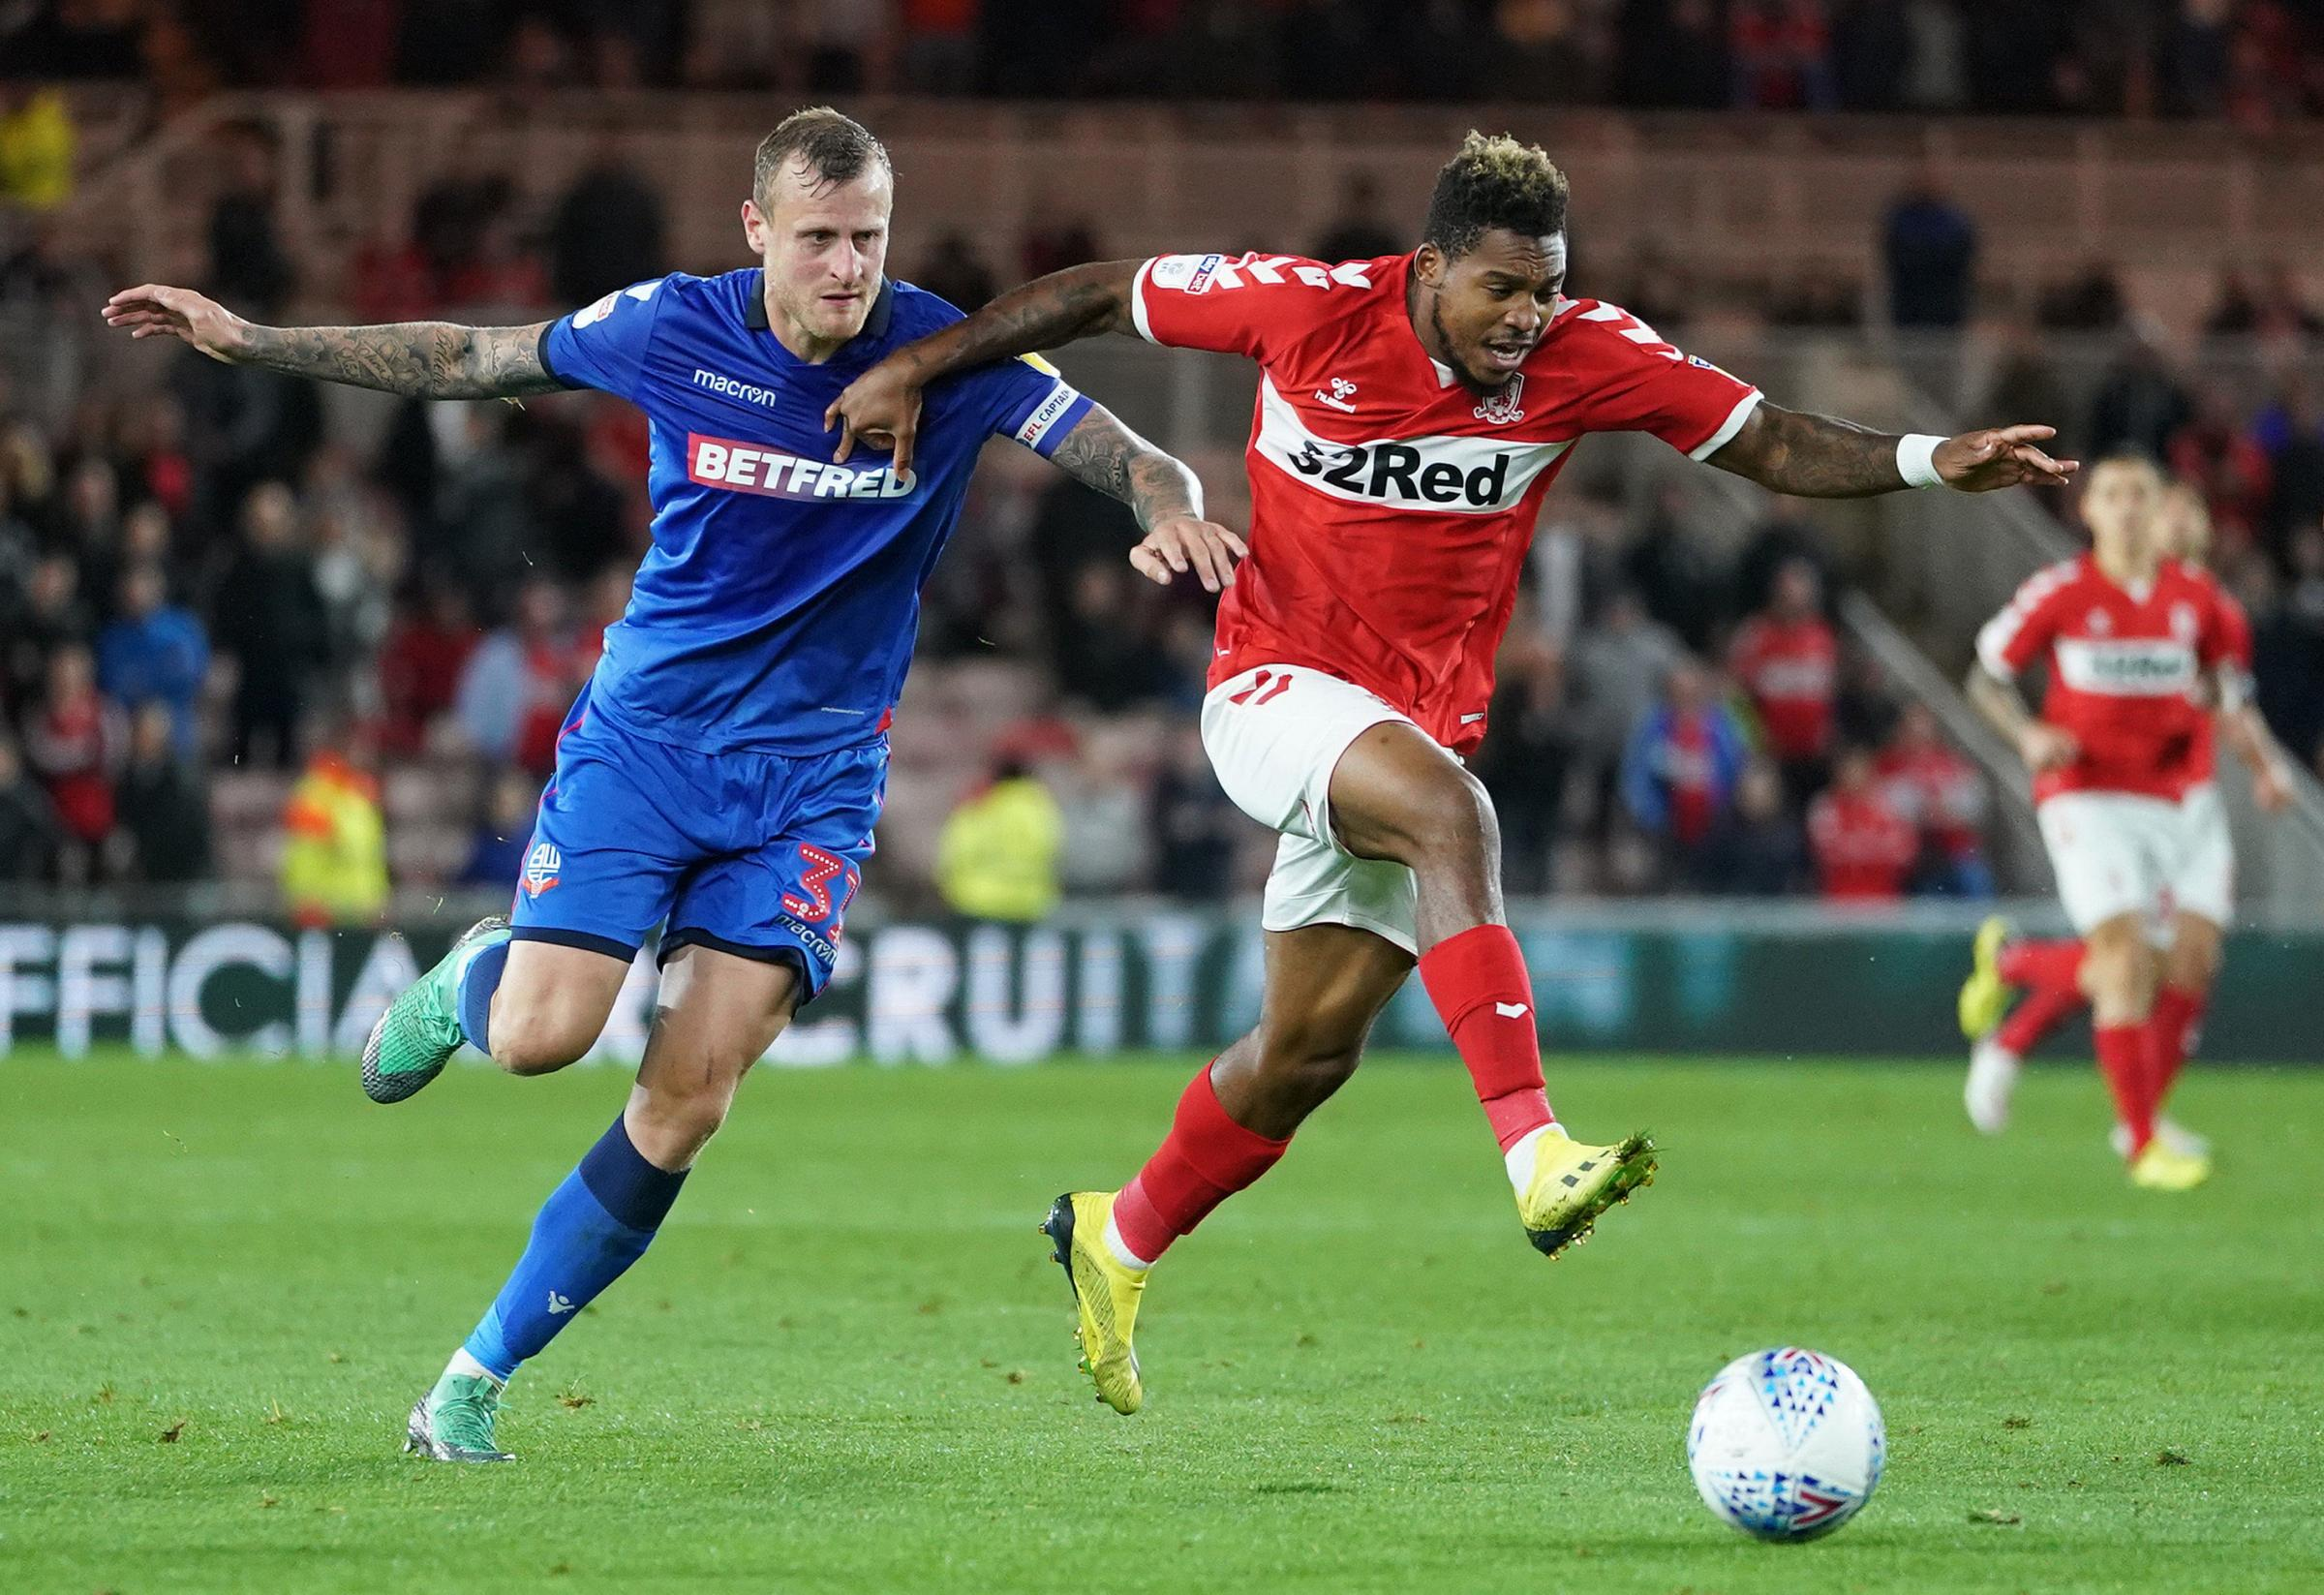 ON THE ATTACK: Britt Assombalonga breaks clear of David Wheater during Middlesbrough's 2-0 win over Bolton (Picture: Owen Humphreys/PA Wire)